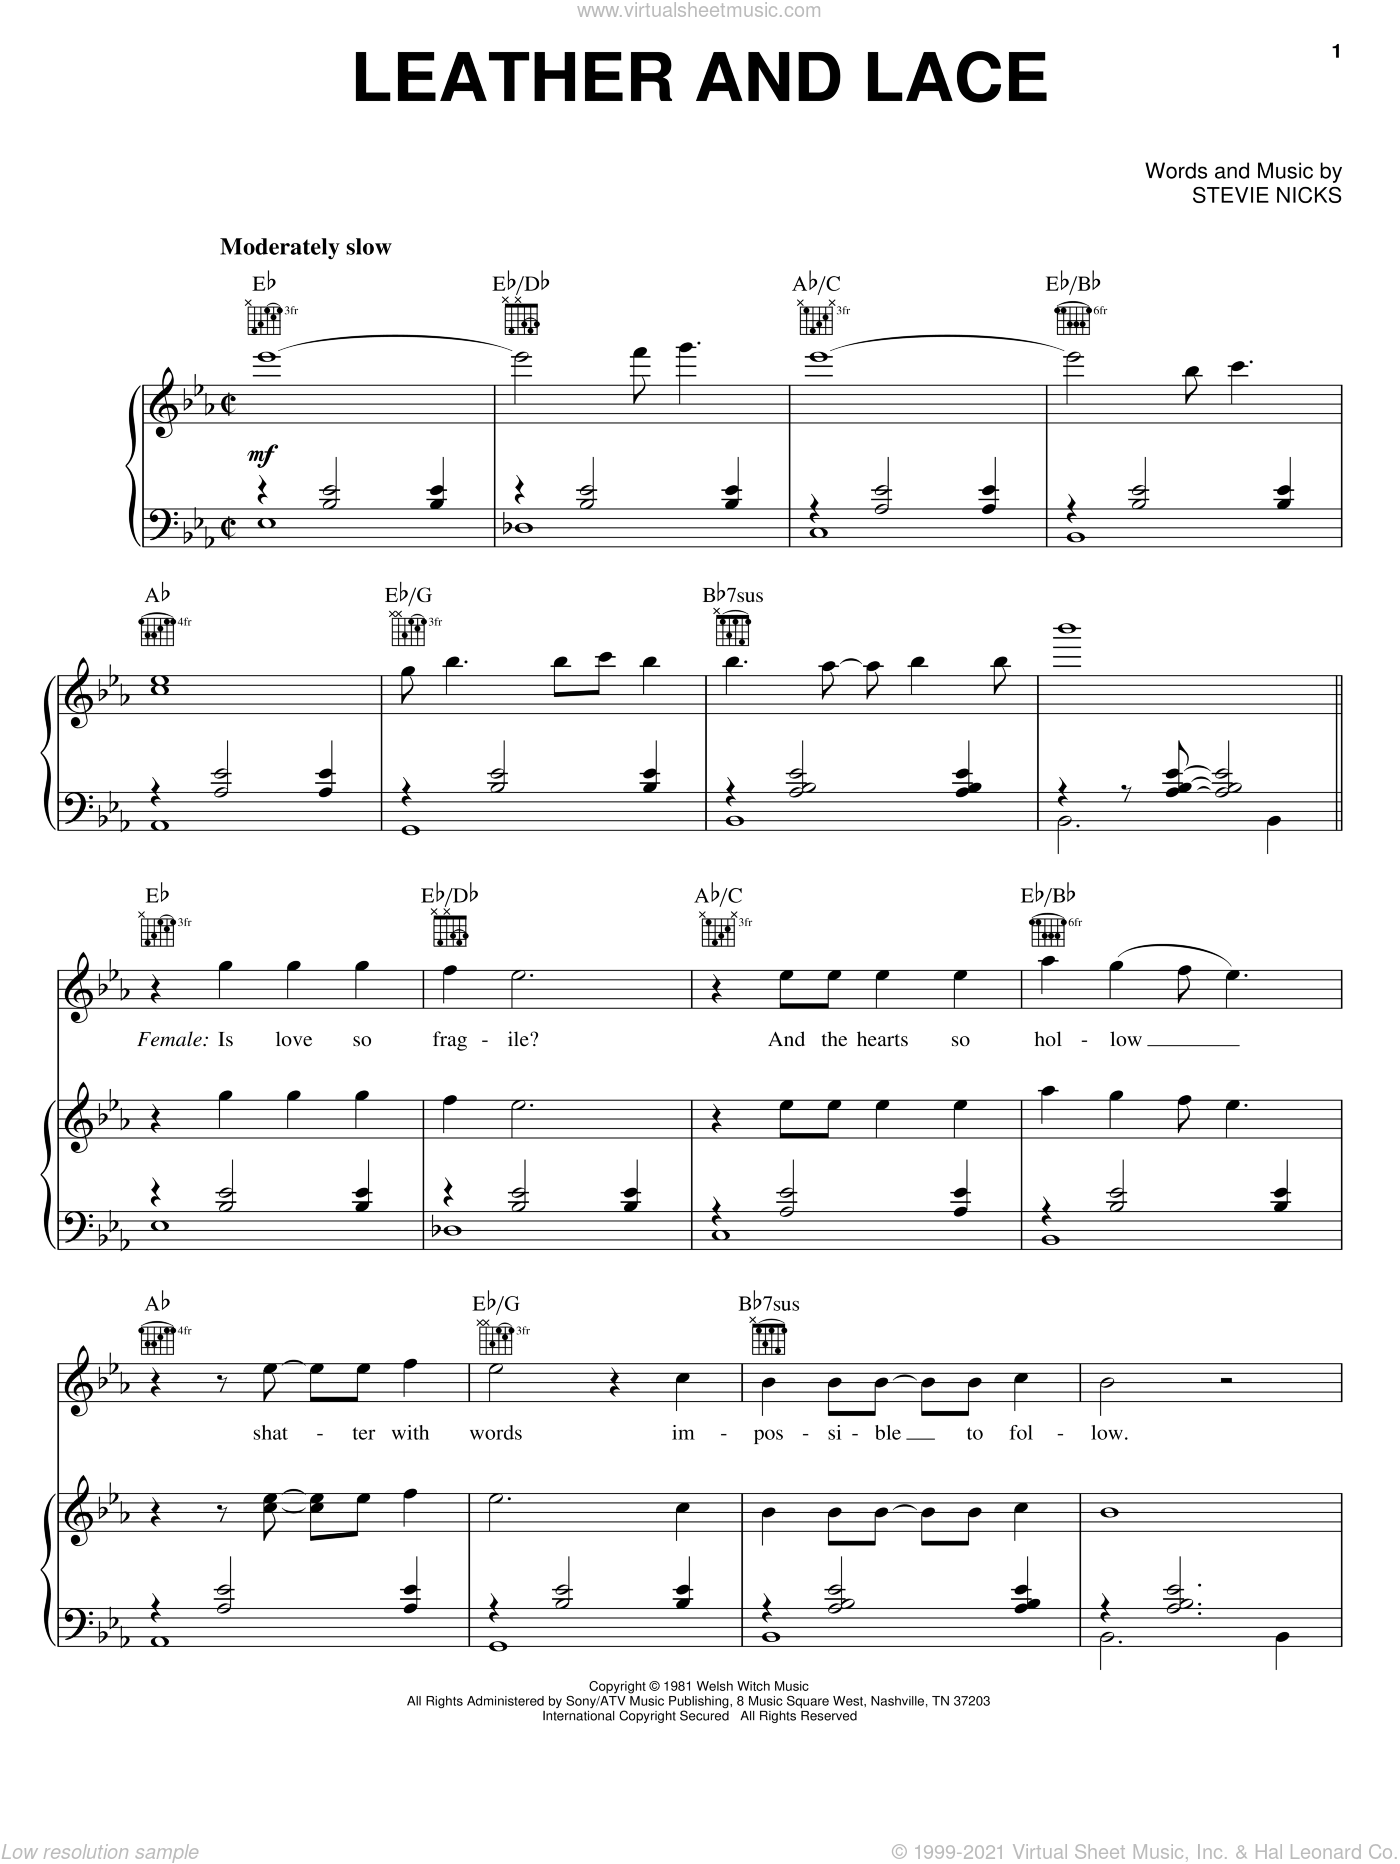 Leather And Lace sheet music for voice, piano or guitar by Stevie Nicks, intermediate skill level